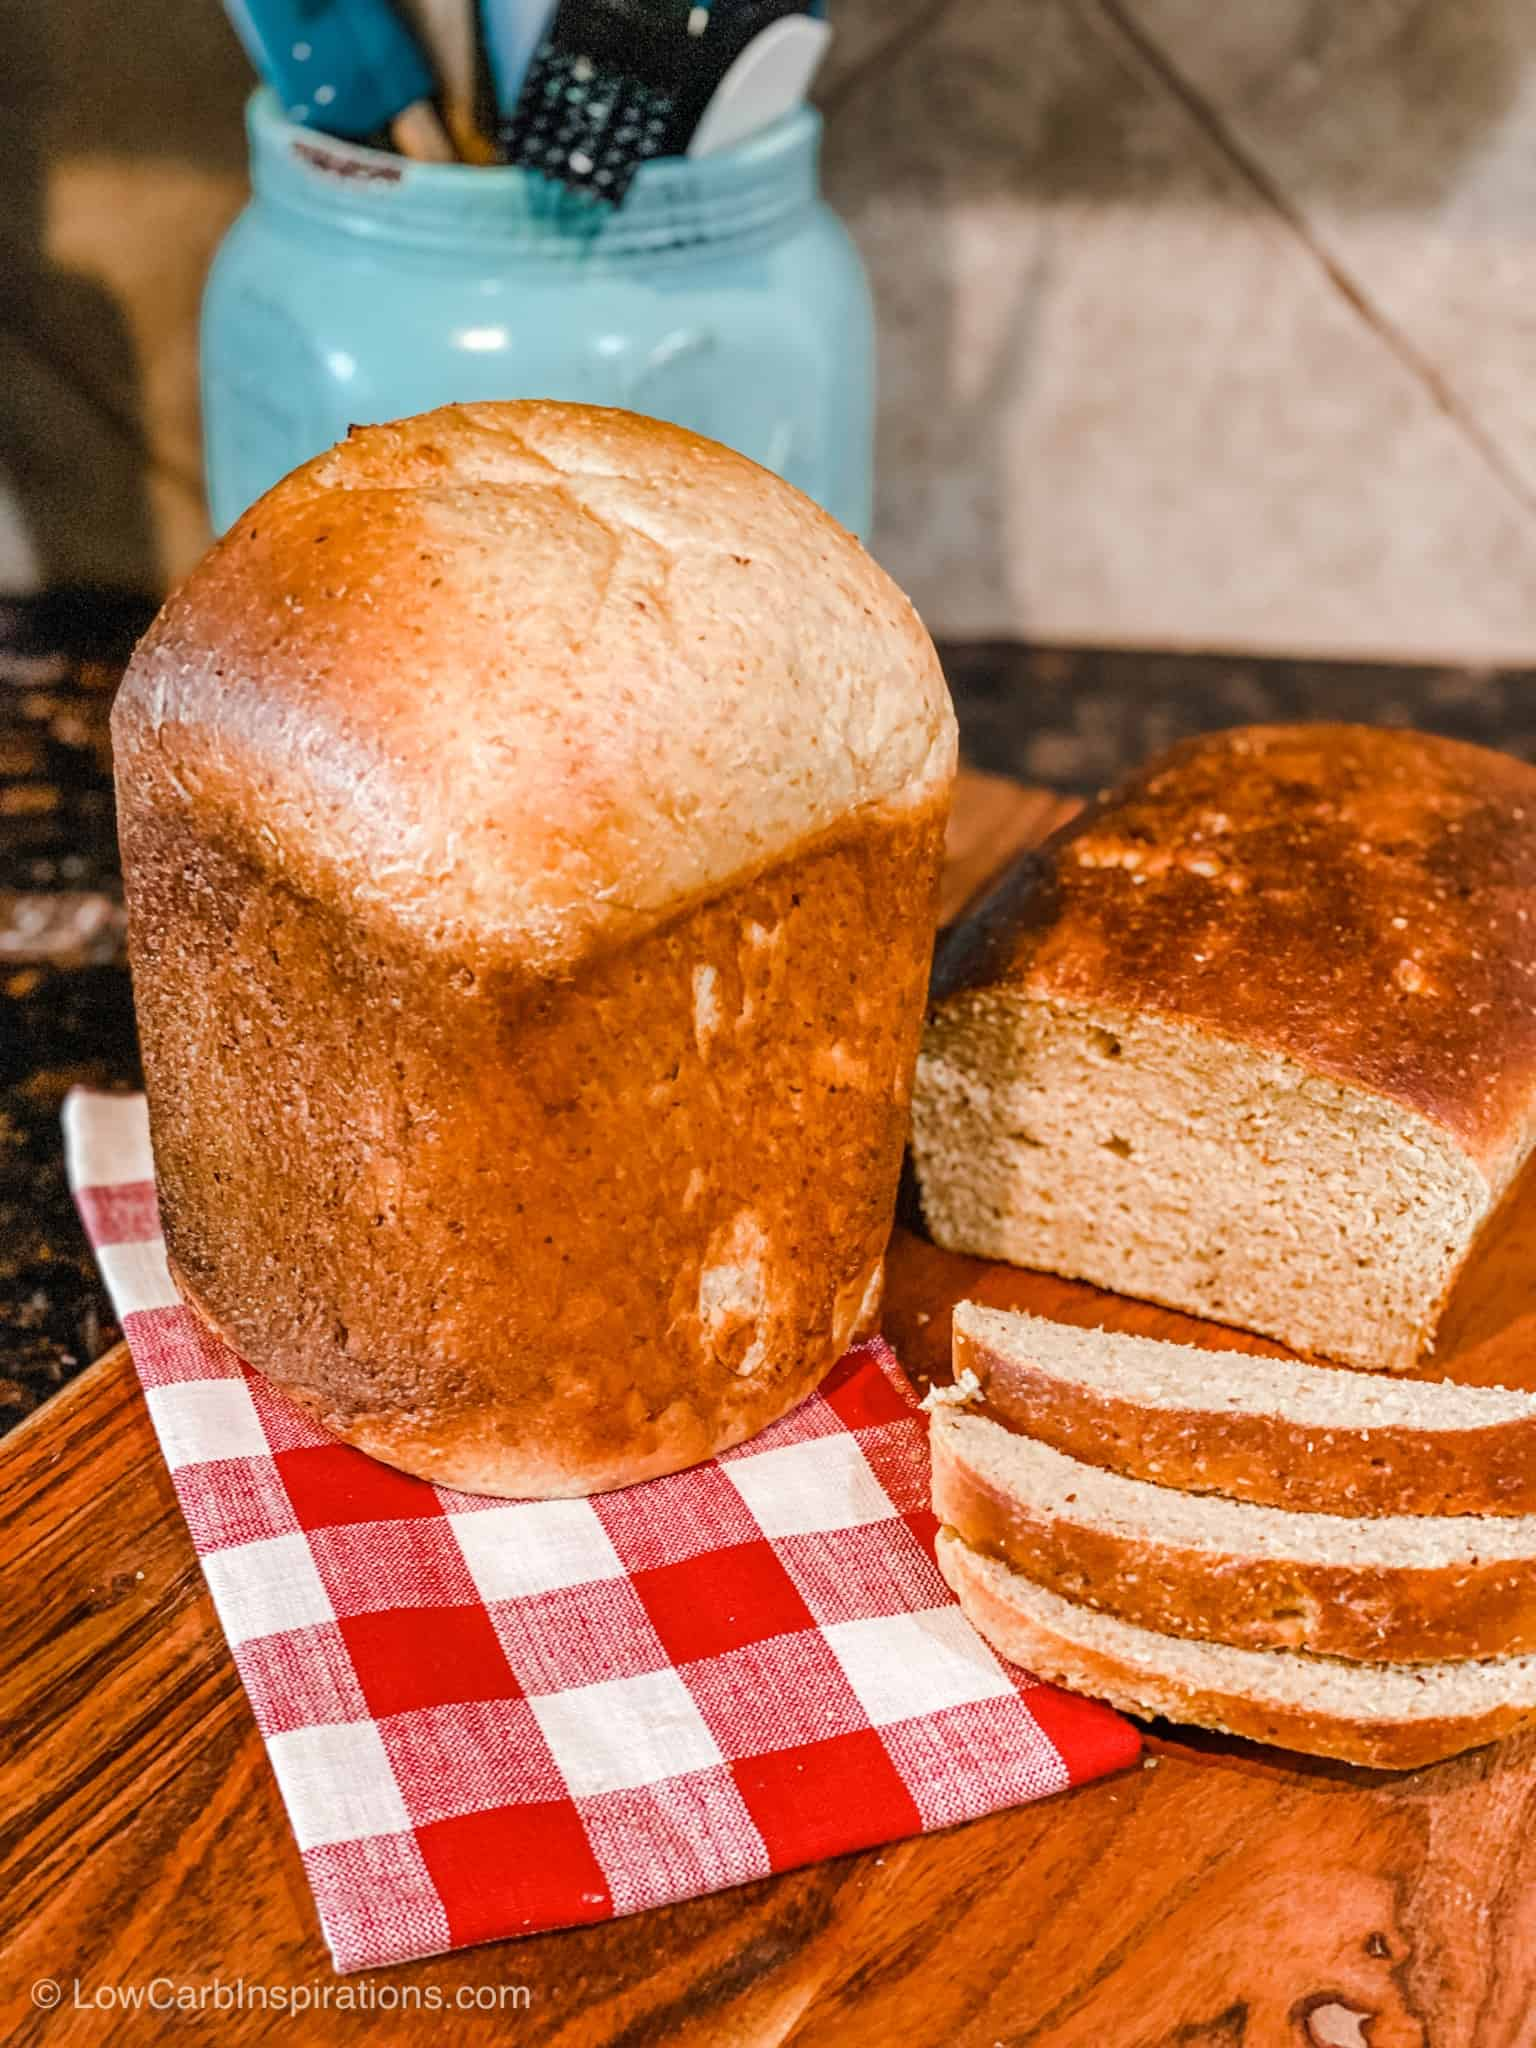 Deidre's Low Carb Bread Recipe made KETO FRIENDLY!